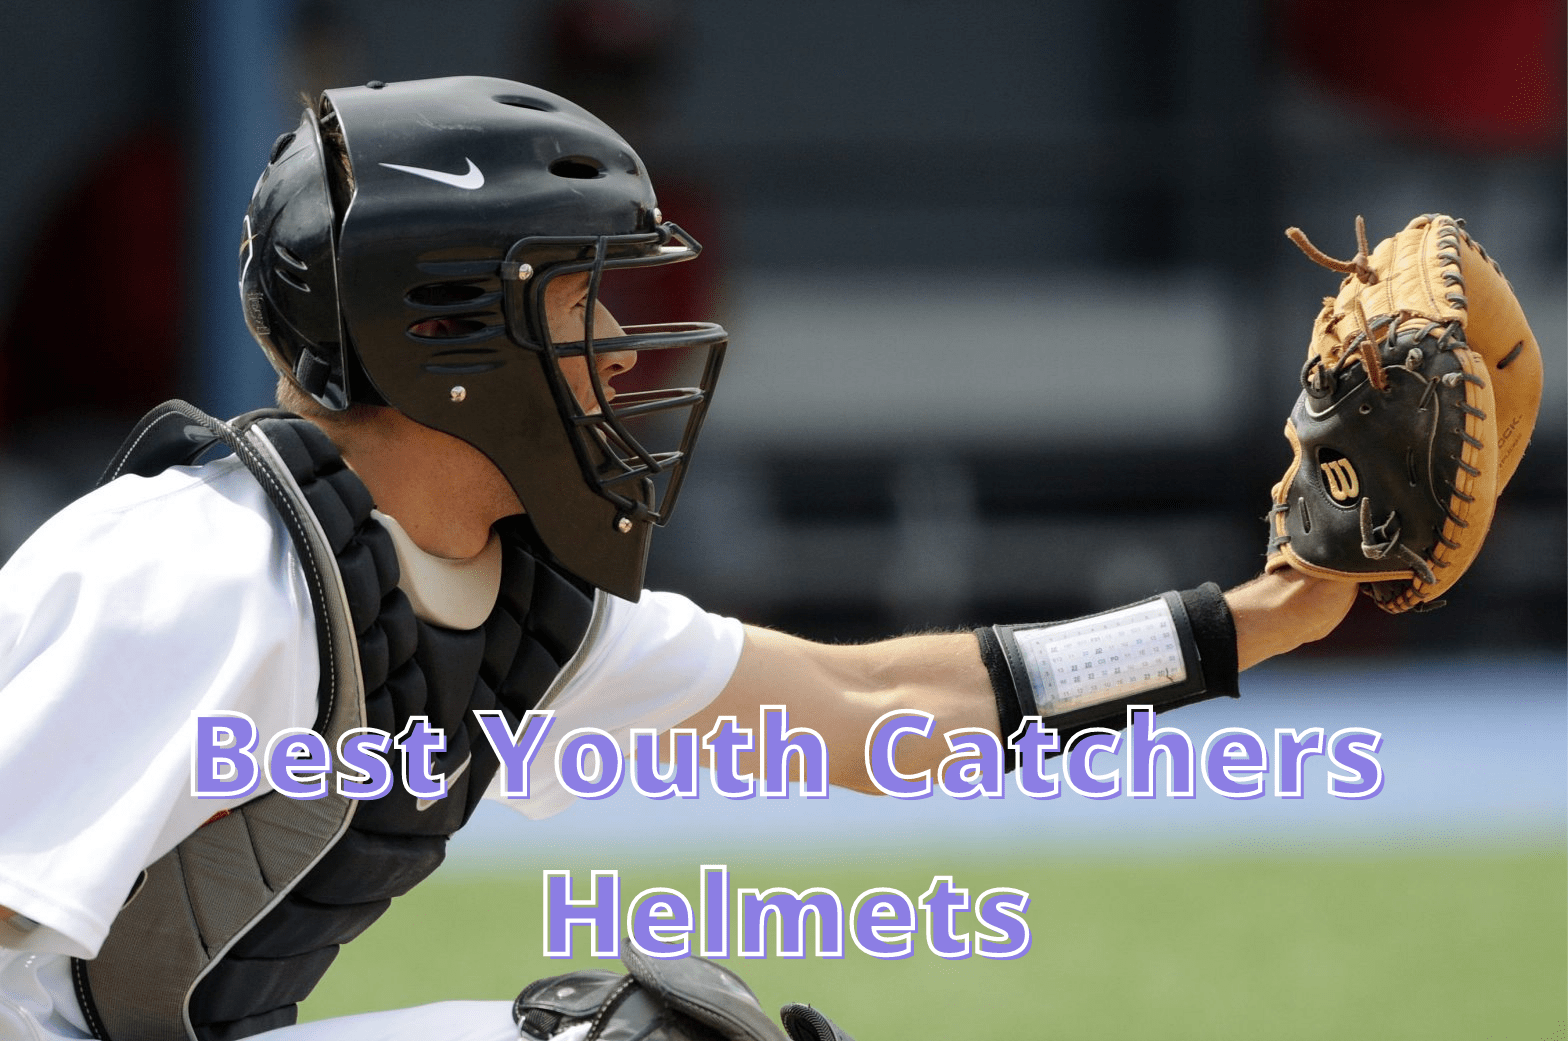 Best Youth Catchers Helmets